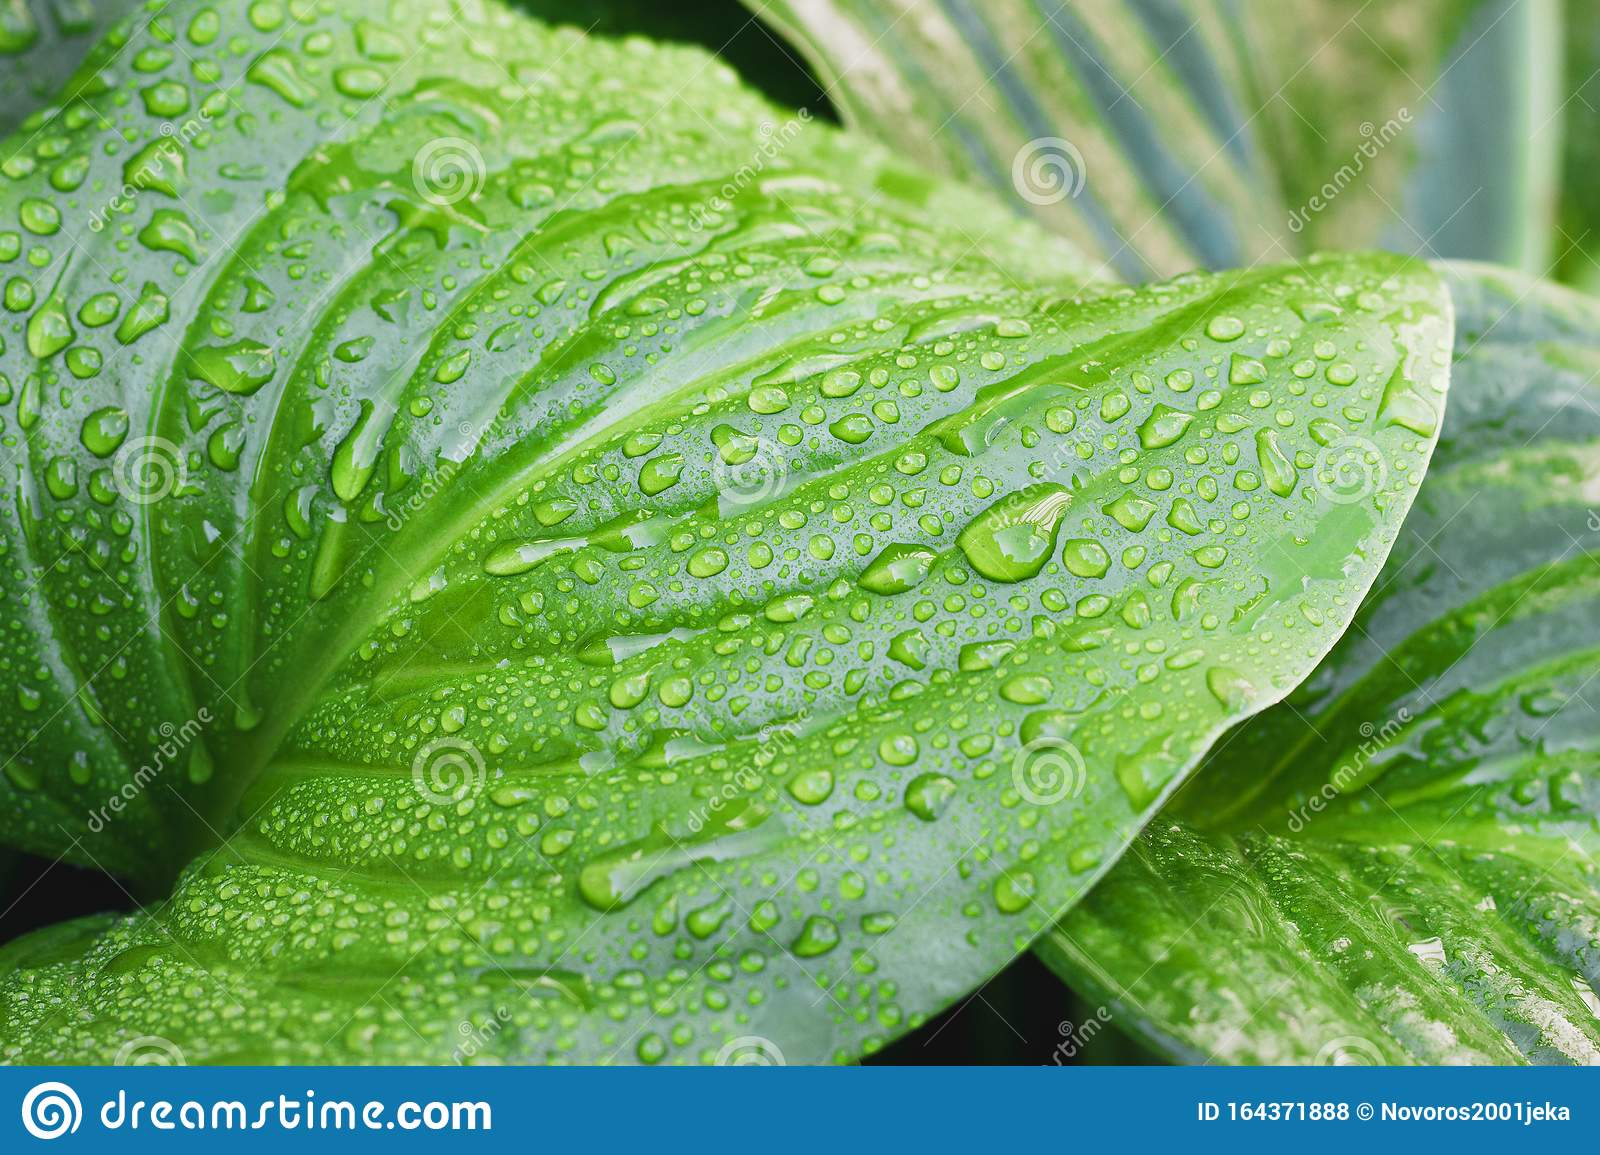 Close Up Of A Tropical Leaf With Water Drops Dew On Tropical Leaves Stock Photo Image Of Foliage Clean 164371888 Beautful sunlight and green leaves 4k stock video. https www dreamstime com close up tropical leaf water drops dew tropical leaves close up tropical leaf water drops dew tropical image164371888